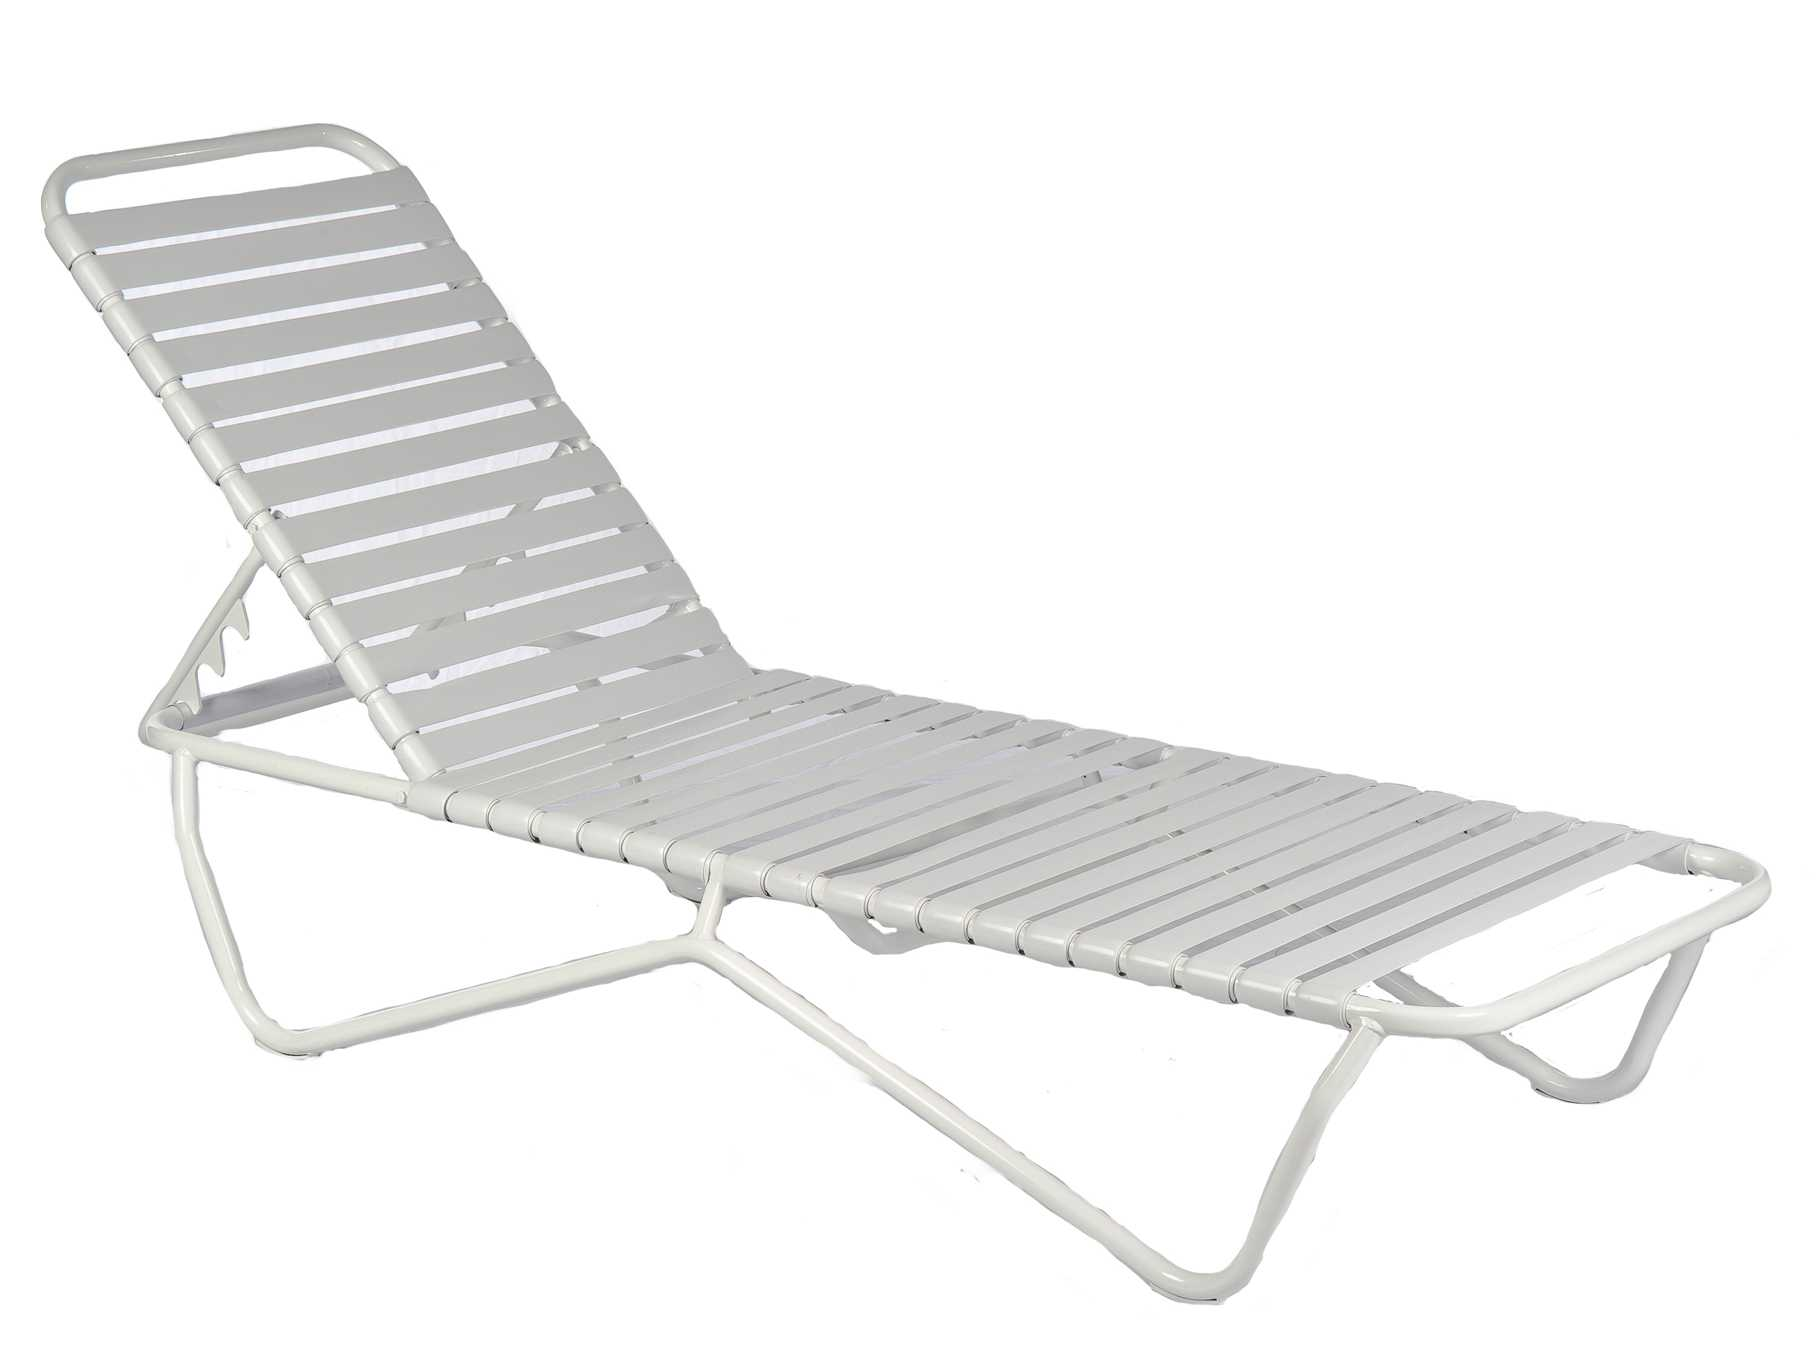 toddler lounge chair with straps alabama lawn boat frankford umbrellas commercial furniture strap chaise